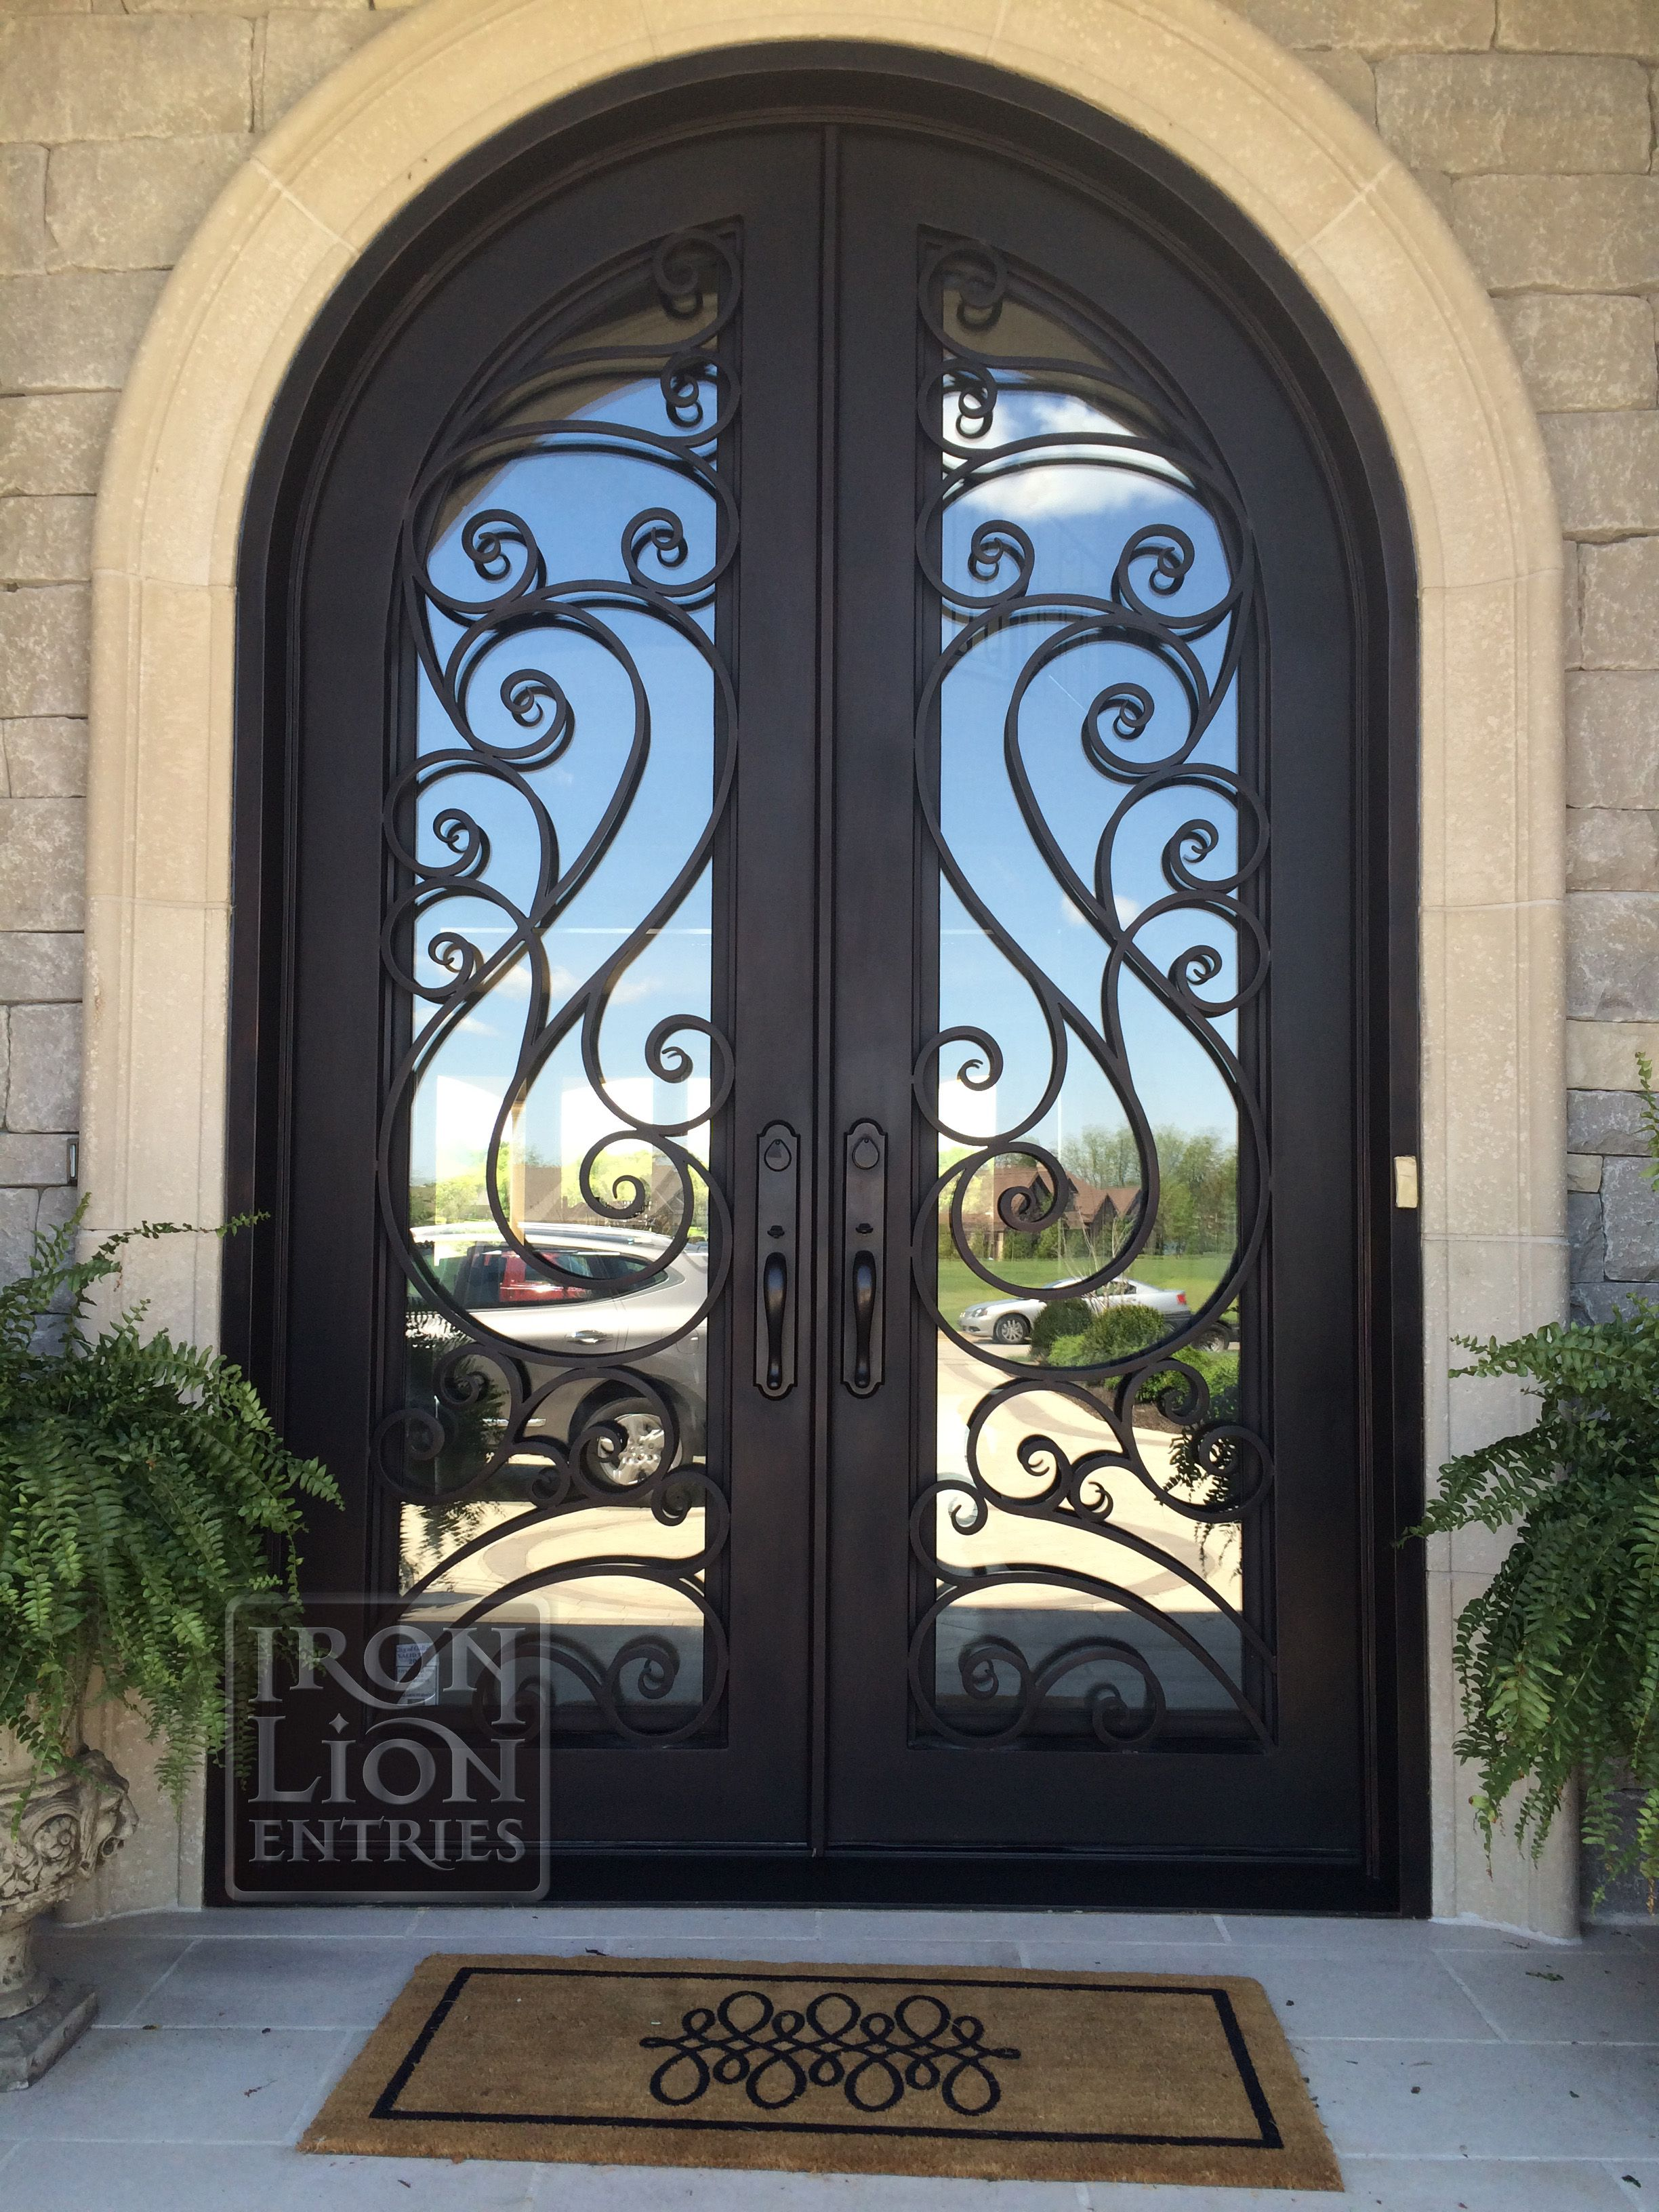 Wrought iron entry door ironentrydoor custom 10ft door wrought iron entry door ironentrydoor custom 10ft door installation rubansaba